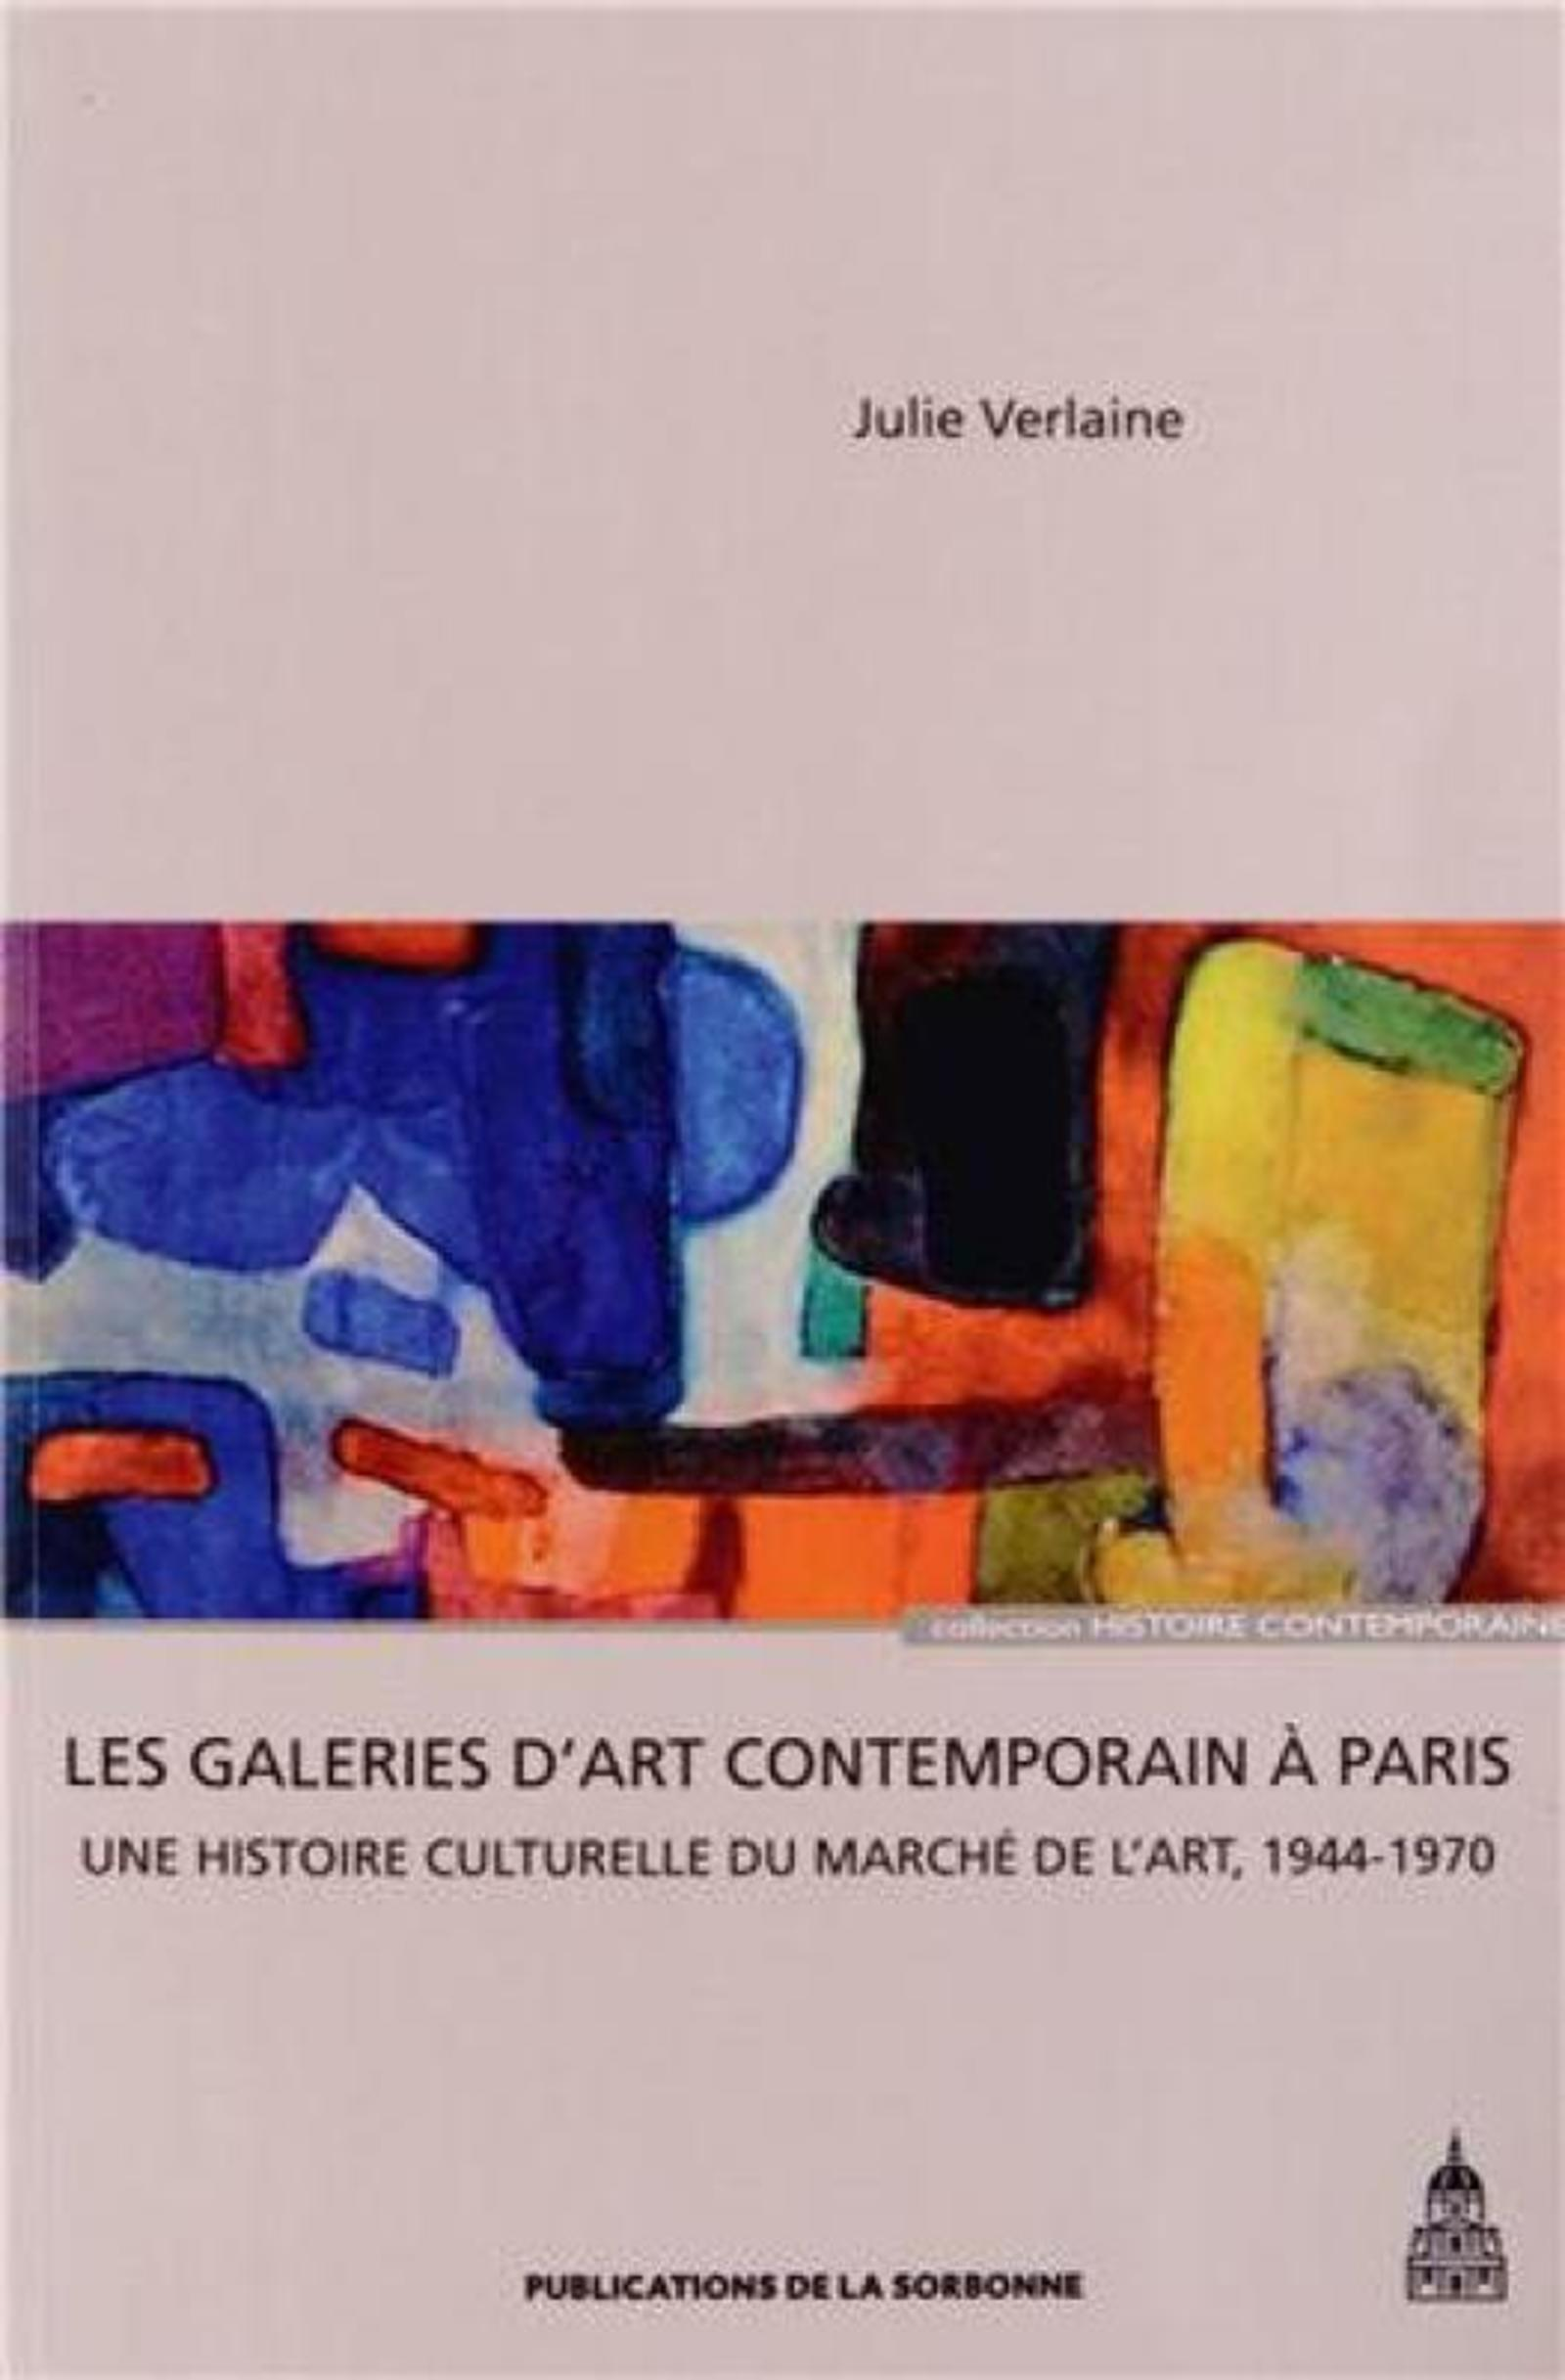 GALERIES D ART CONTEMPORAIN A PARIS DE LA LIBERATION A LA FIN DES ANNEES 1960